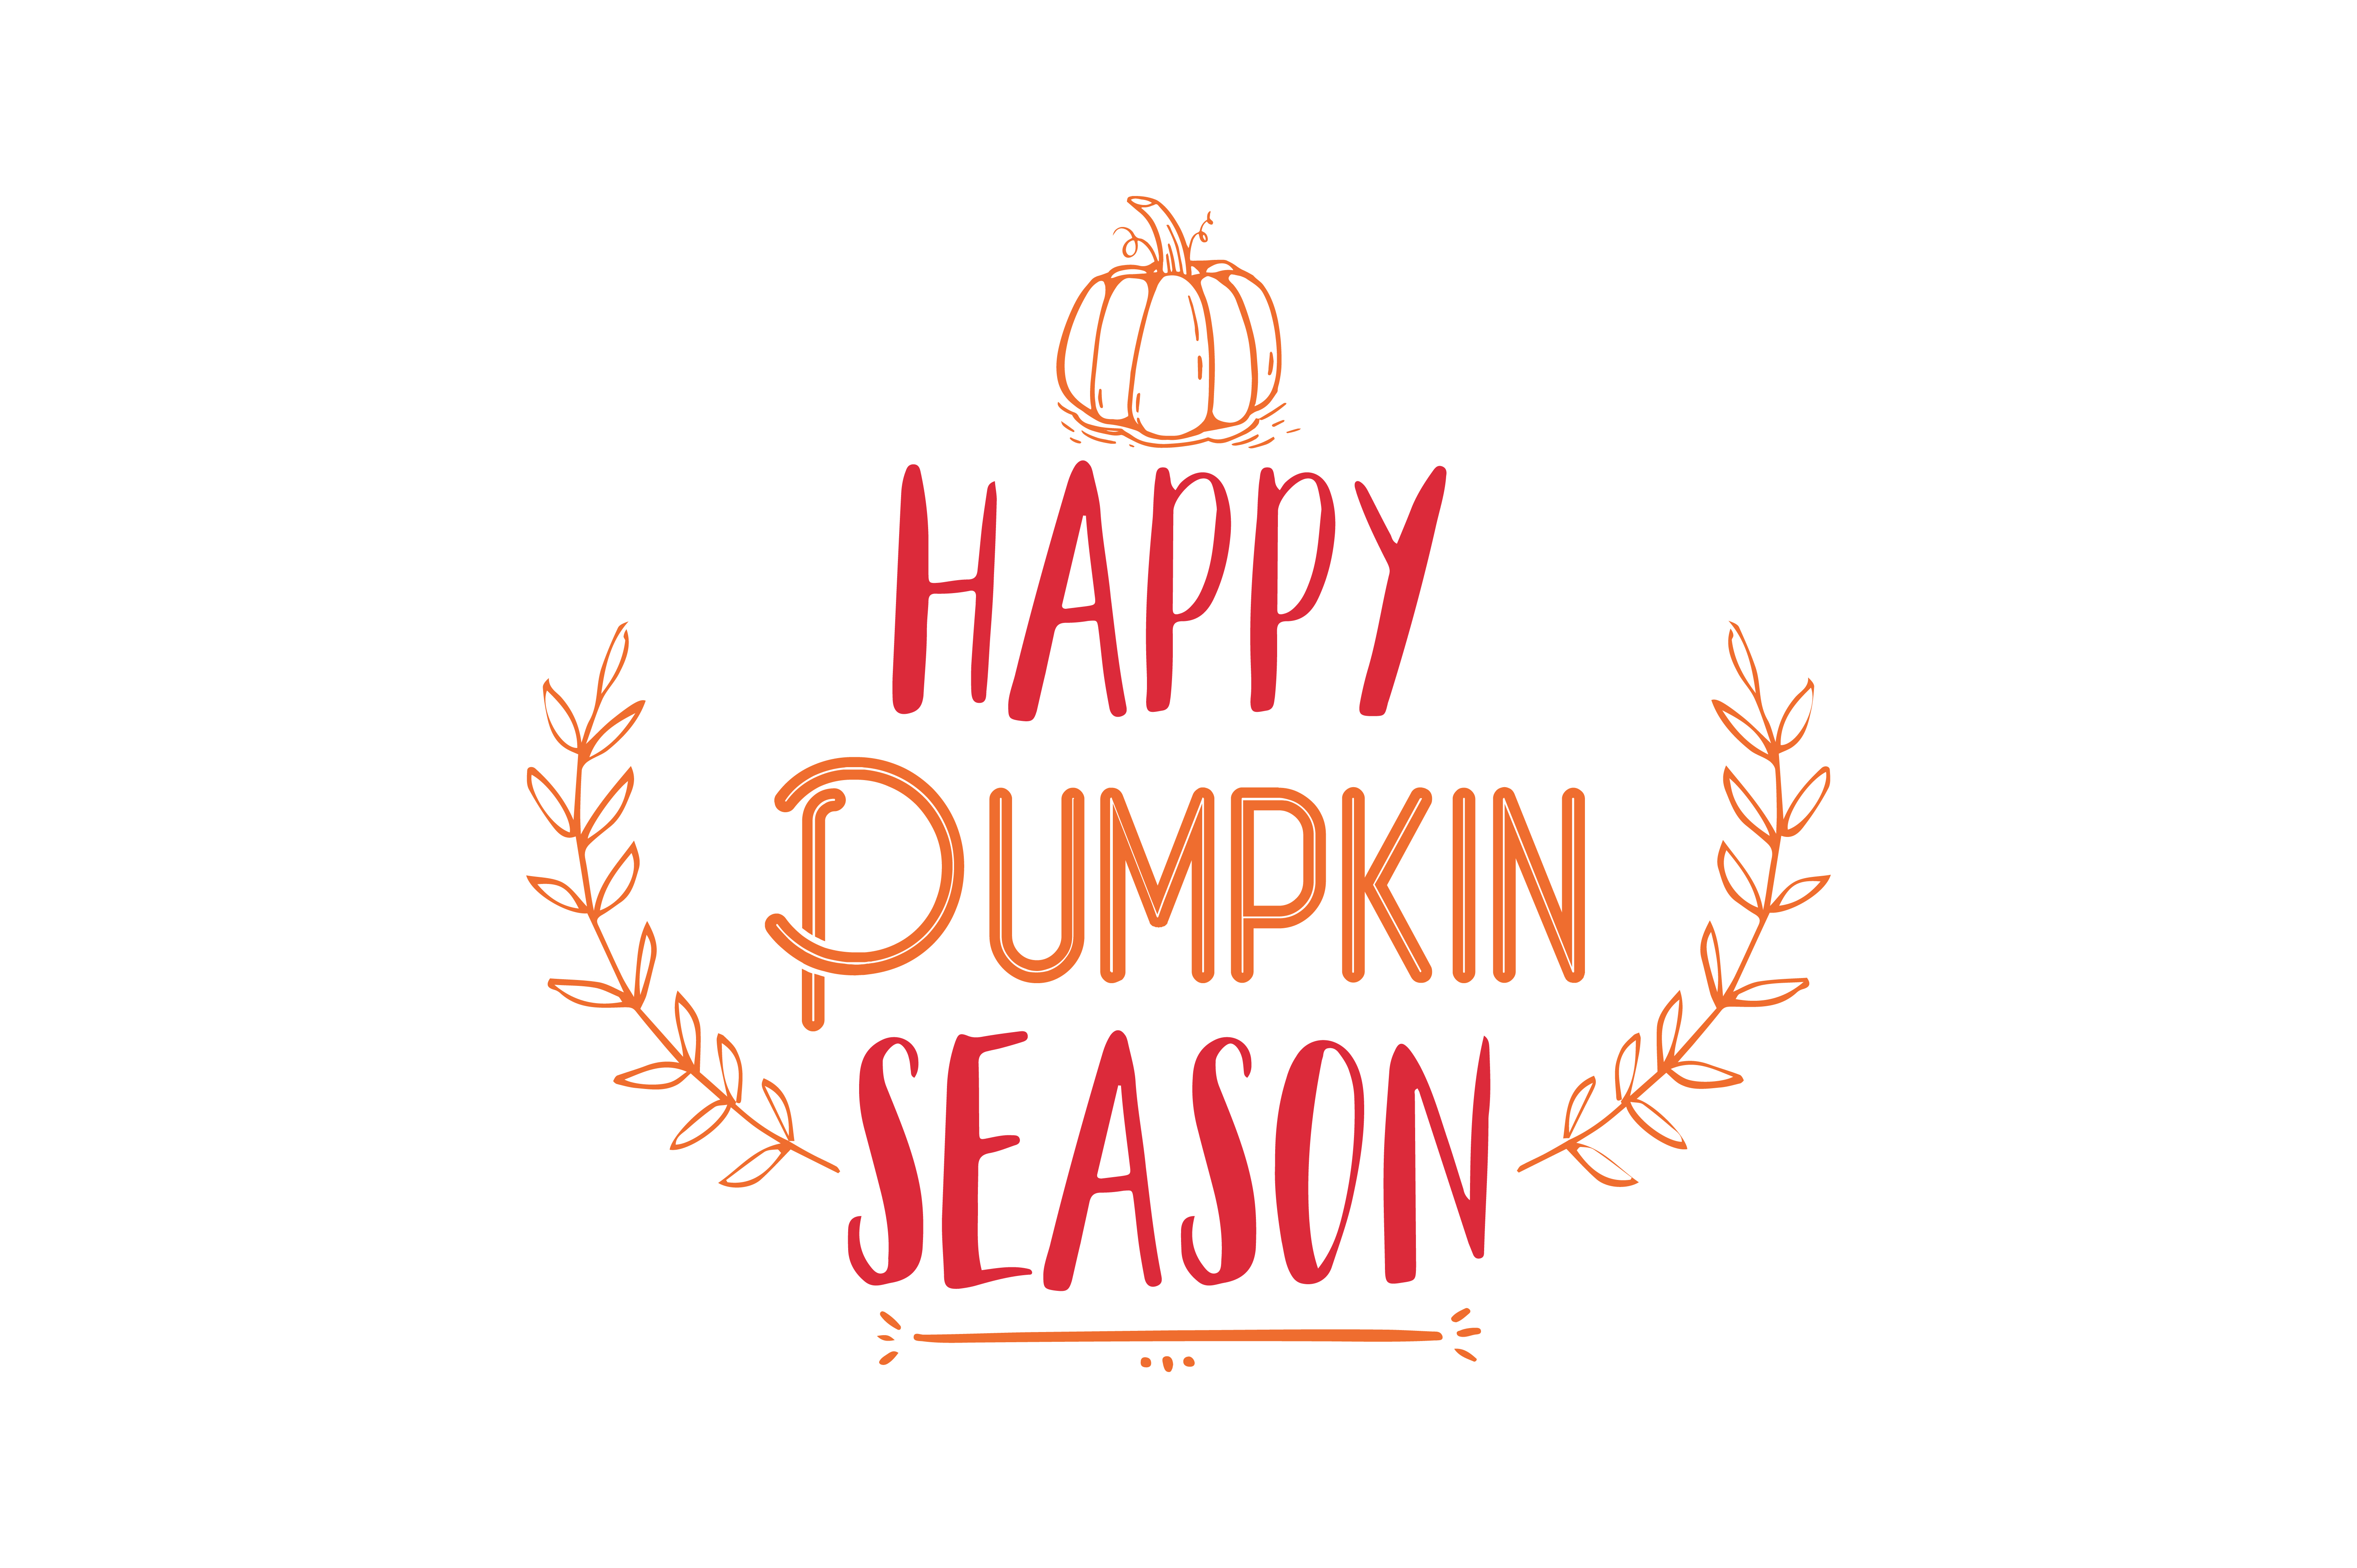 Download Free Happy Pumpkin Season Quote Svg Cut Graphic By Thelucky for Cricut Explore, Silhouette and other cutting machines.